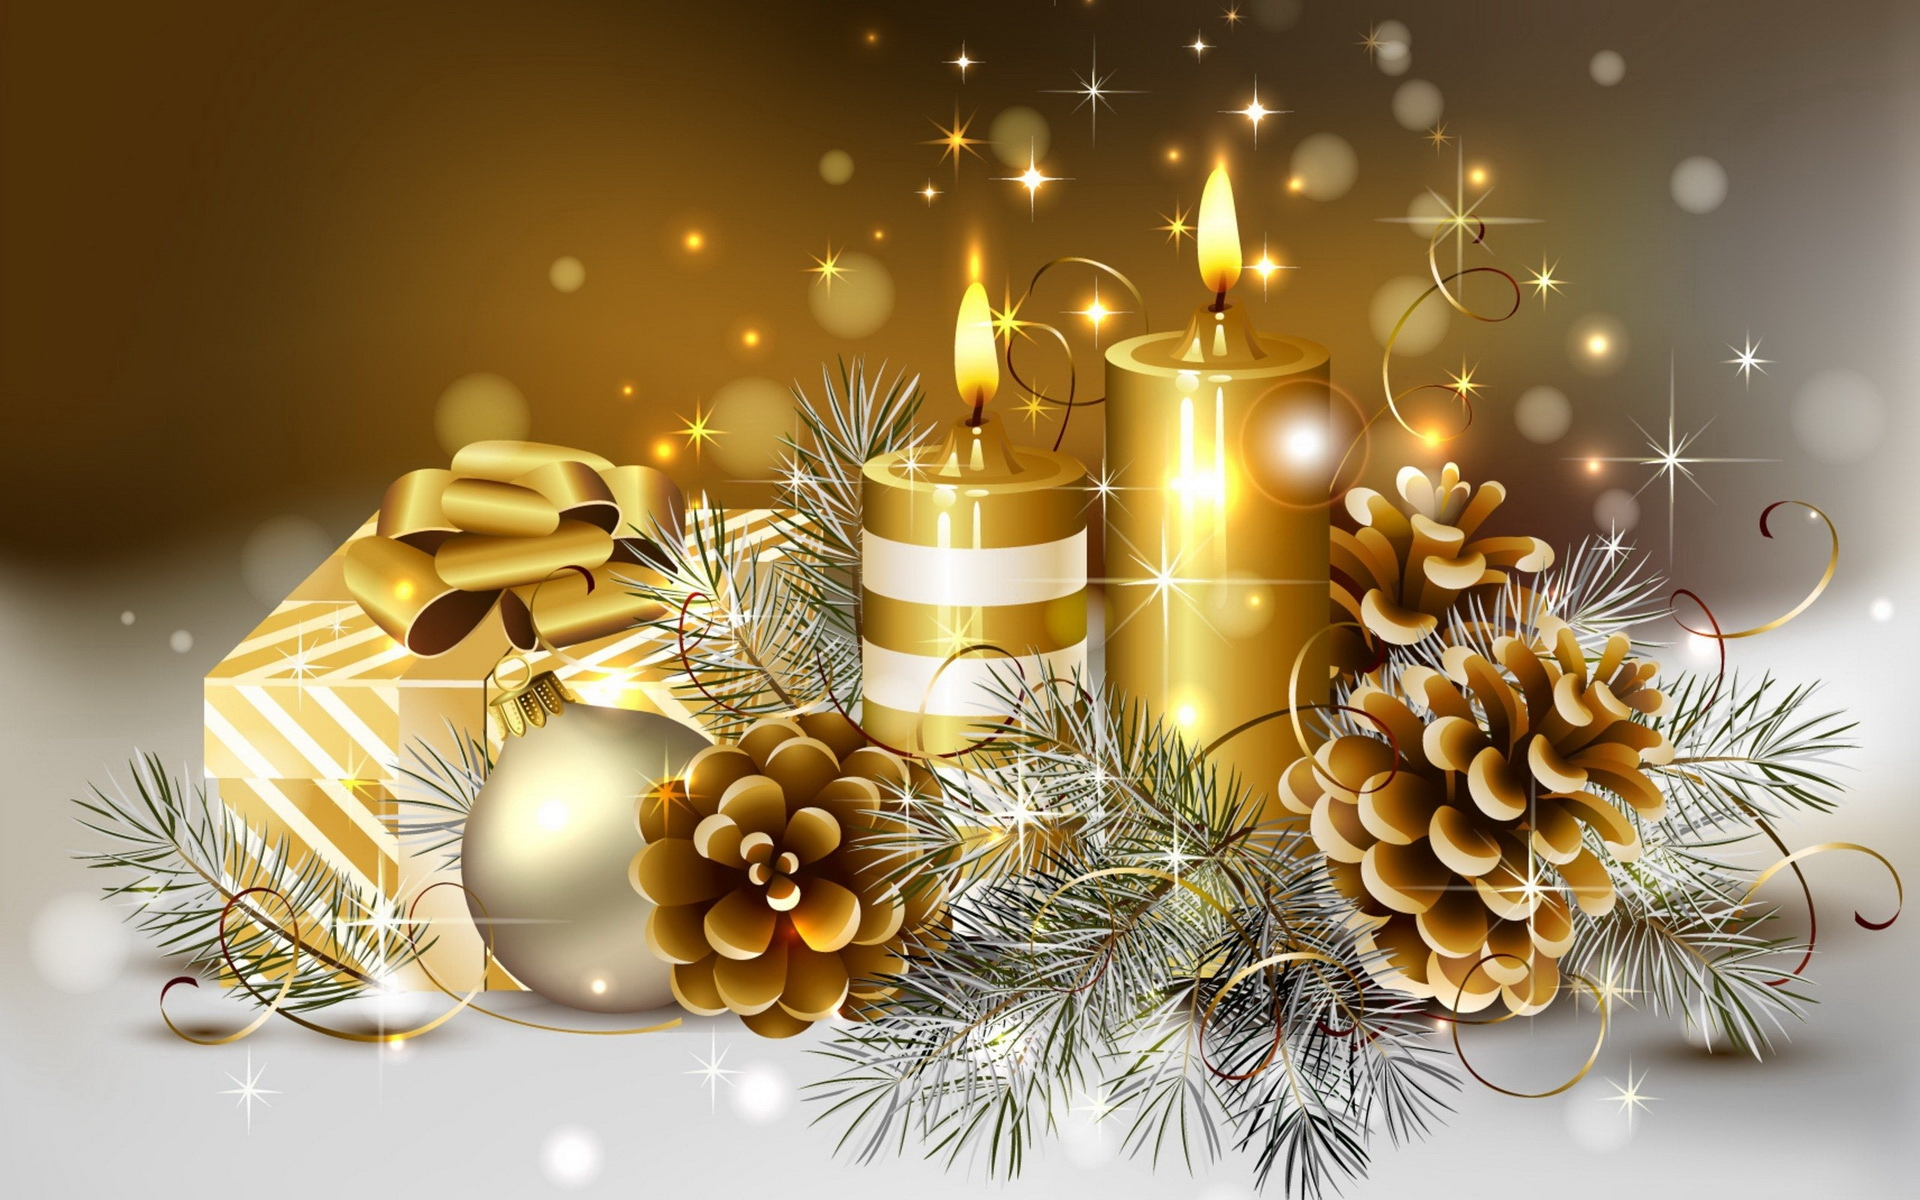 merry-christmas-wallpapers-free-hd-for-desktop